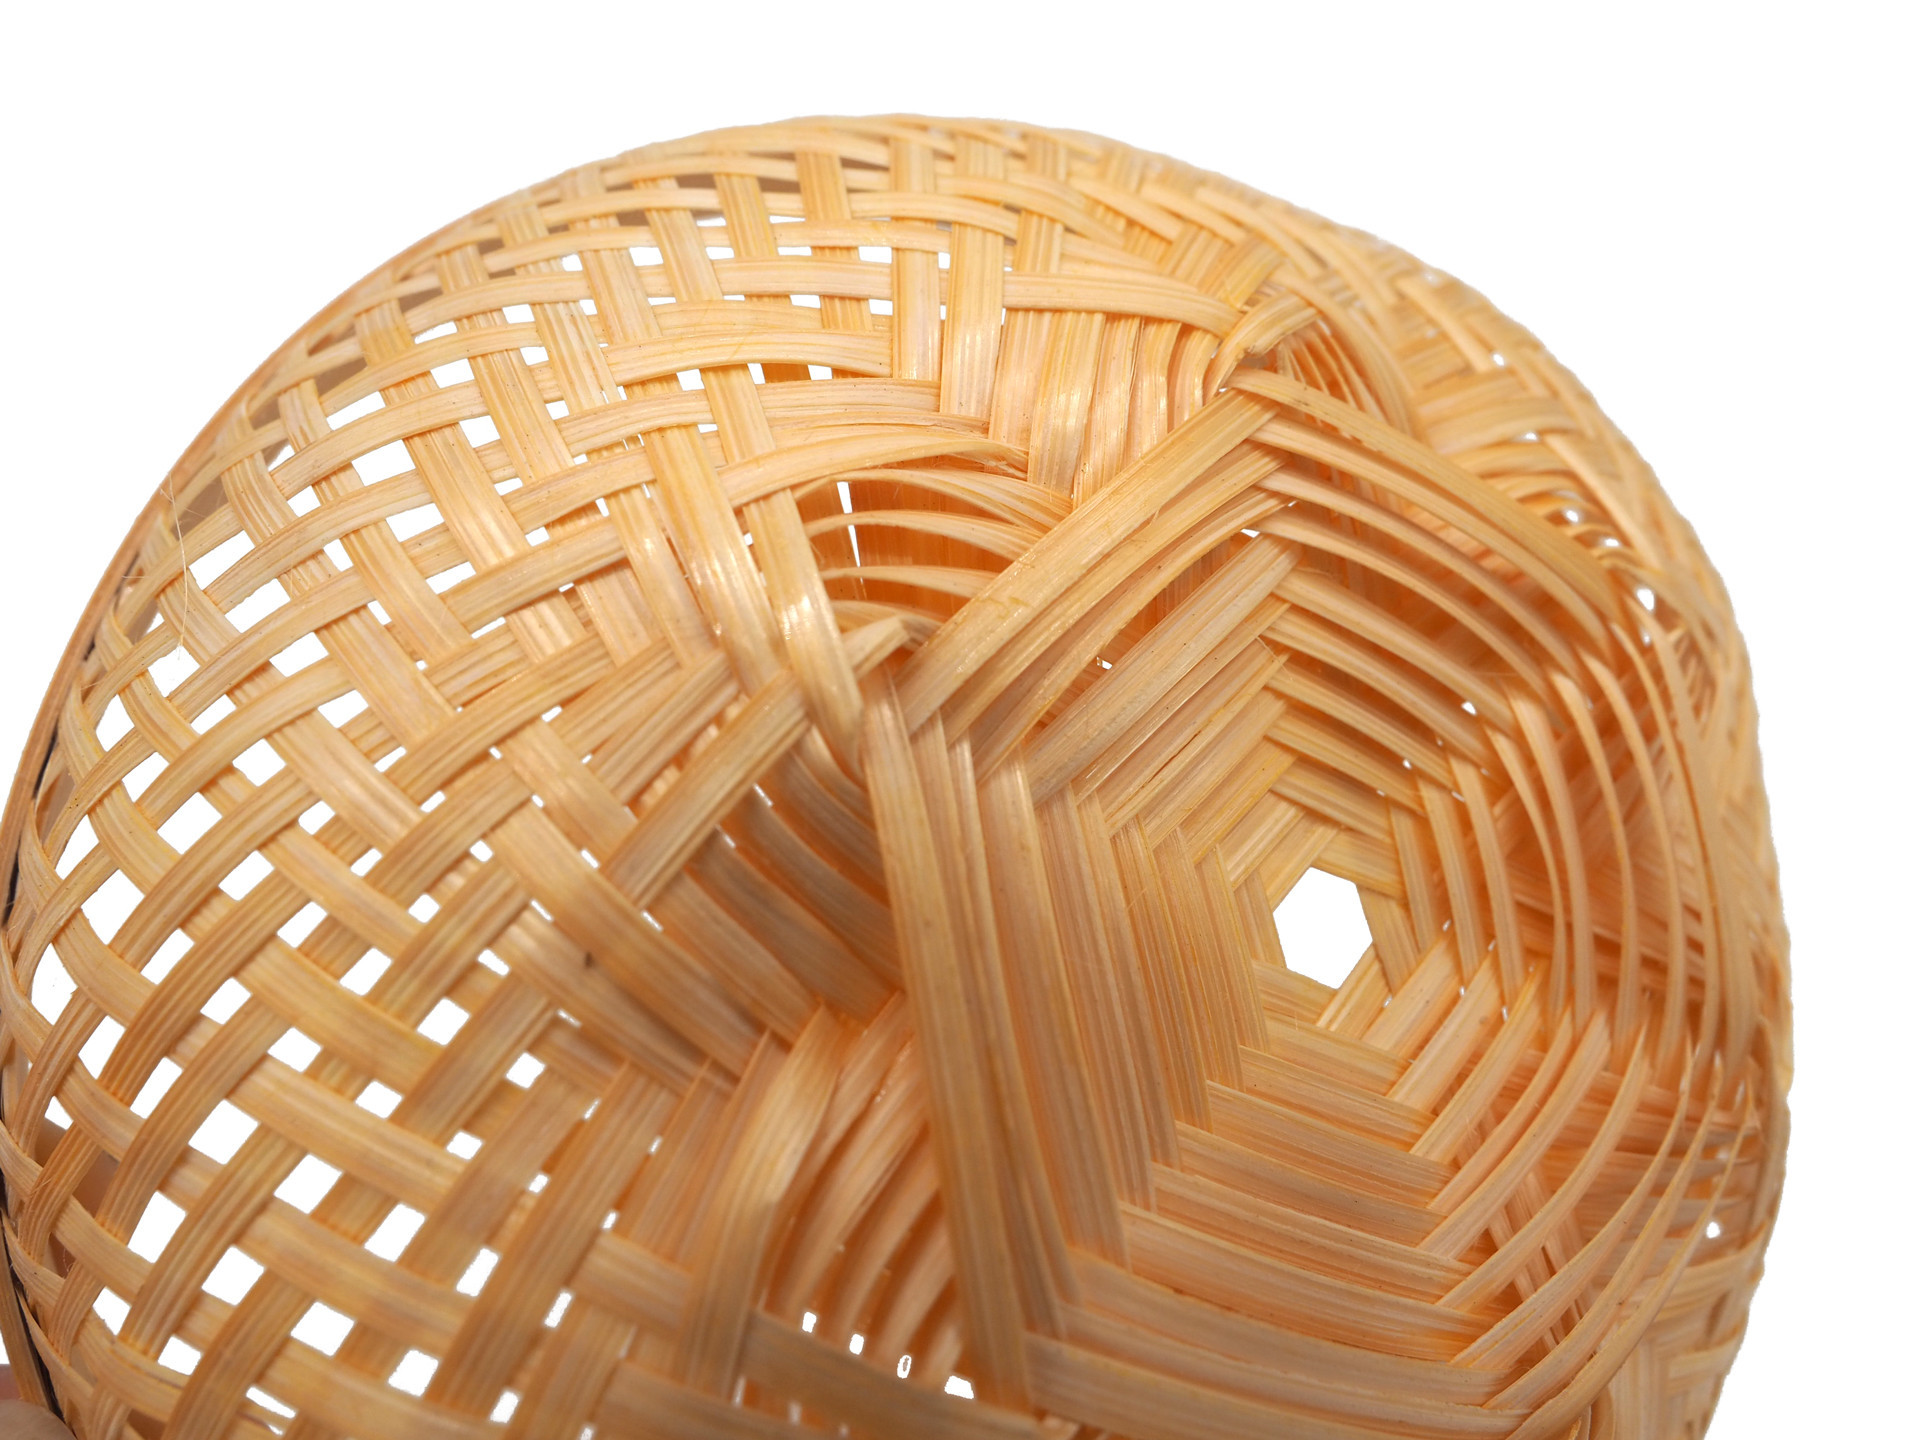 Picture of Bamboo Basket Bowl, Light, Natural made and woven by hand 15cm